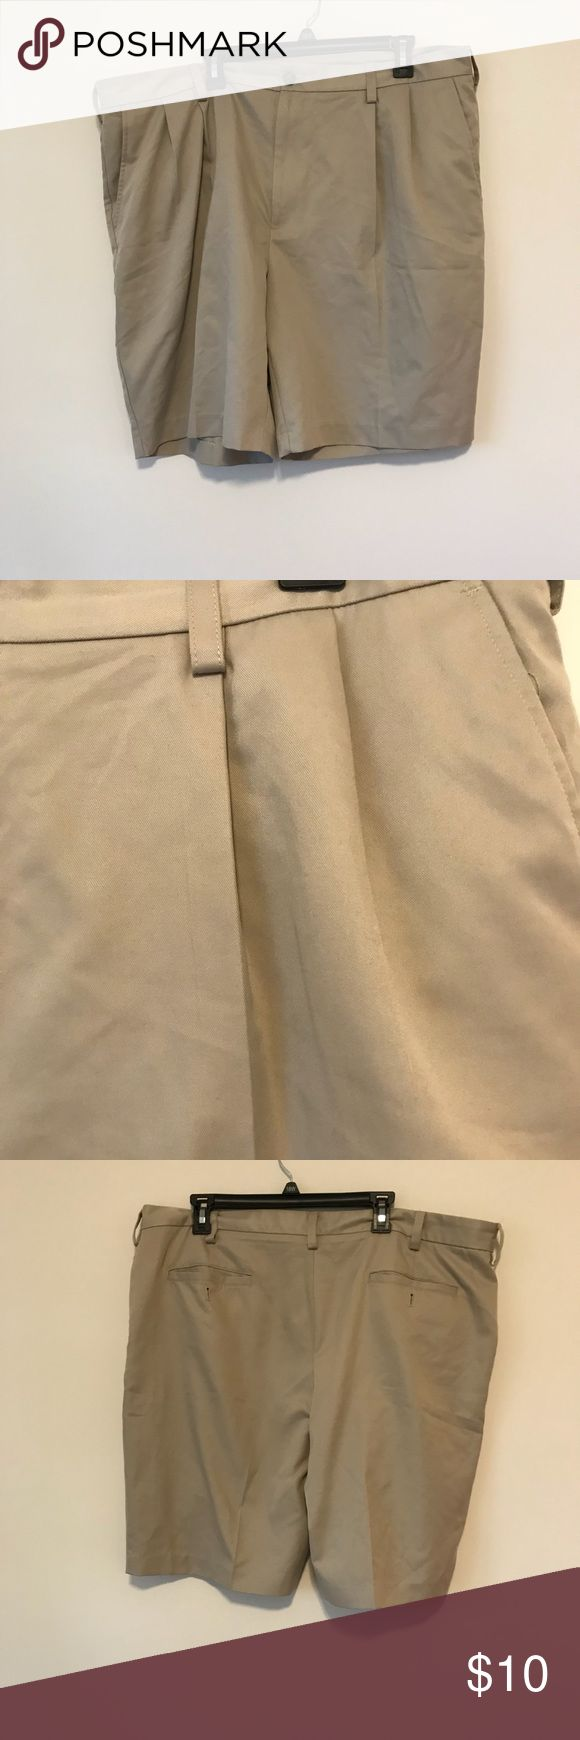 MENS KHAKI SHORTS Pleated. Perfect for looking nice in the summer. Great condition. Size 42,  From a smoke and pet free home. Izod Shorts